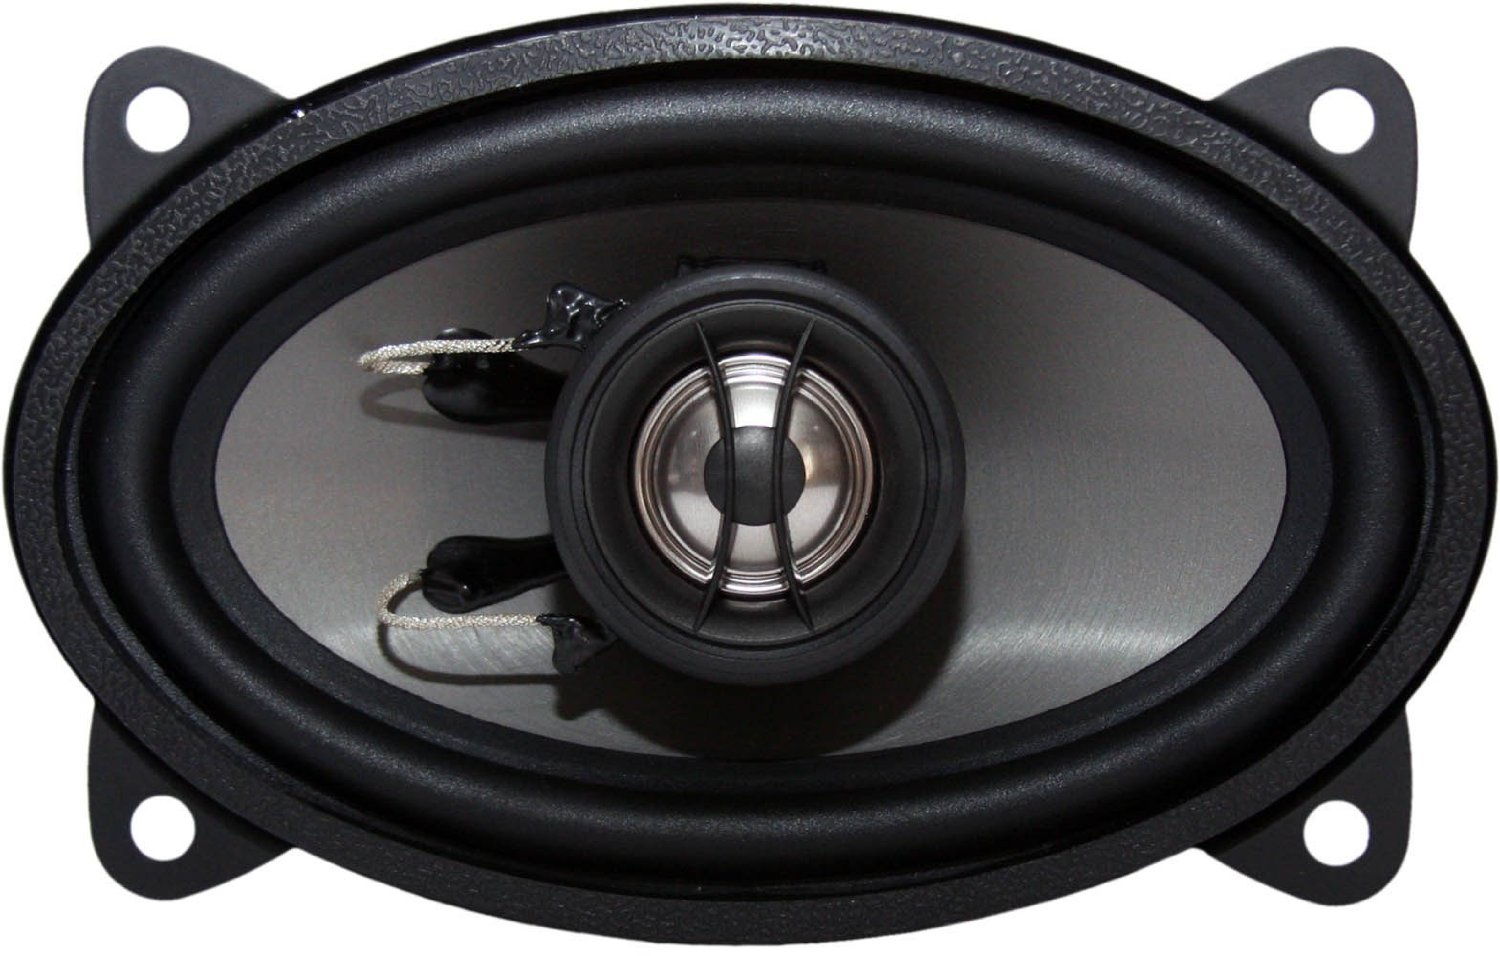 Earthquake Sound T46 4x6-inch 2-Way TNT Series Coaxial Speakers (Pair)